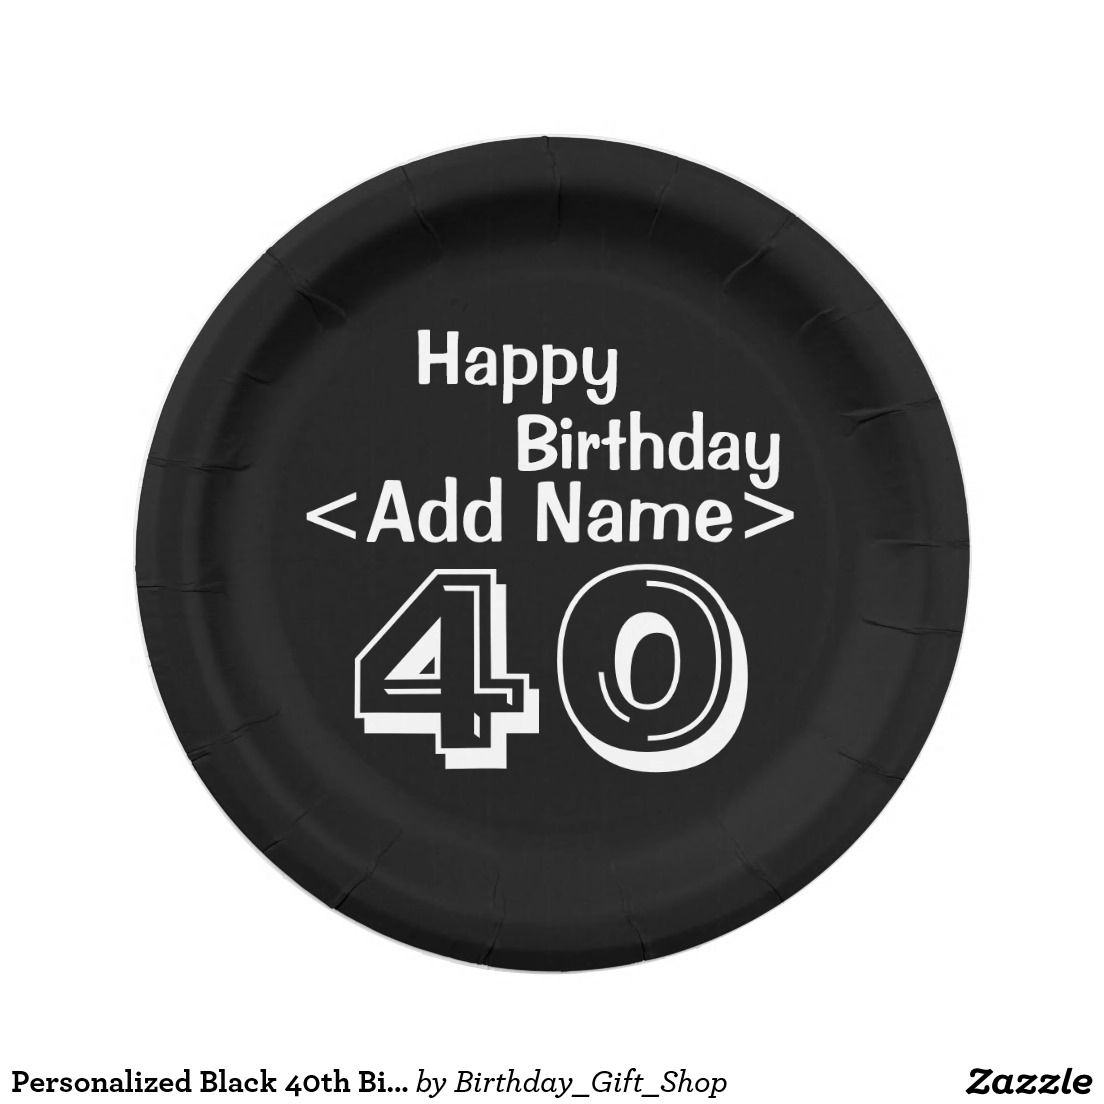 Personalized Black 40th Birthday Paper Plates  sc 1 st  Pinterest & Personalized Black 40th Birthday Paper Plates | Custom Party PAPER ...